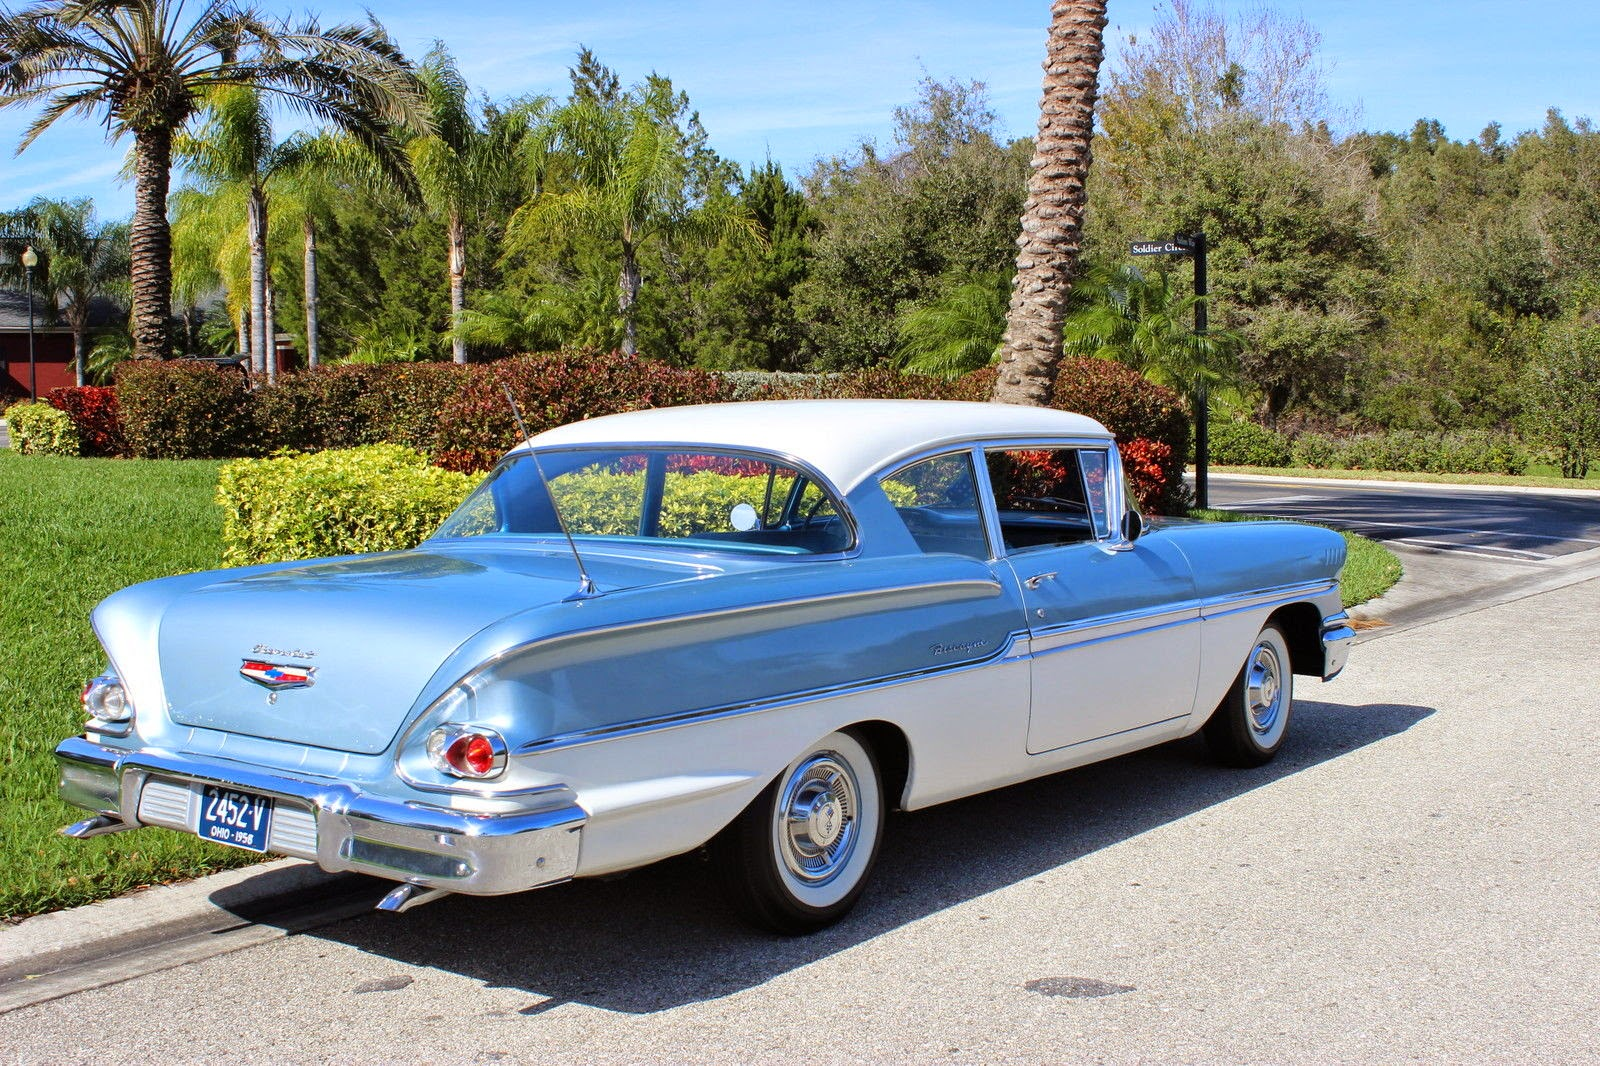 2015 Buick Lesabre >> All American Classic Cars: 1958 Chevrolet Biscayne 2-Door ...